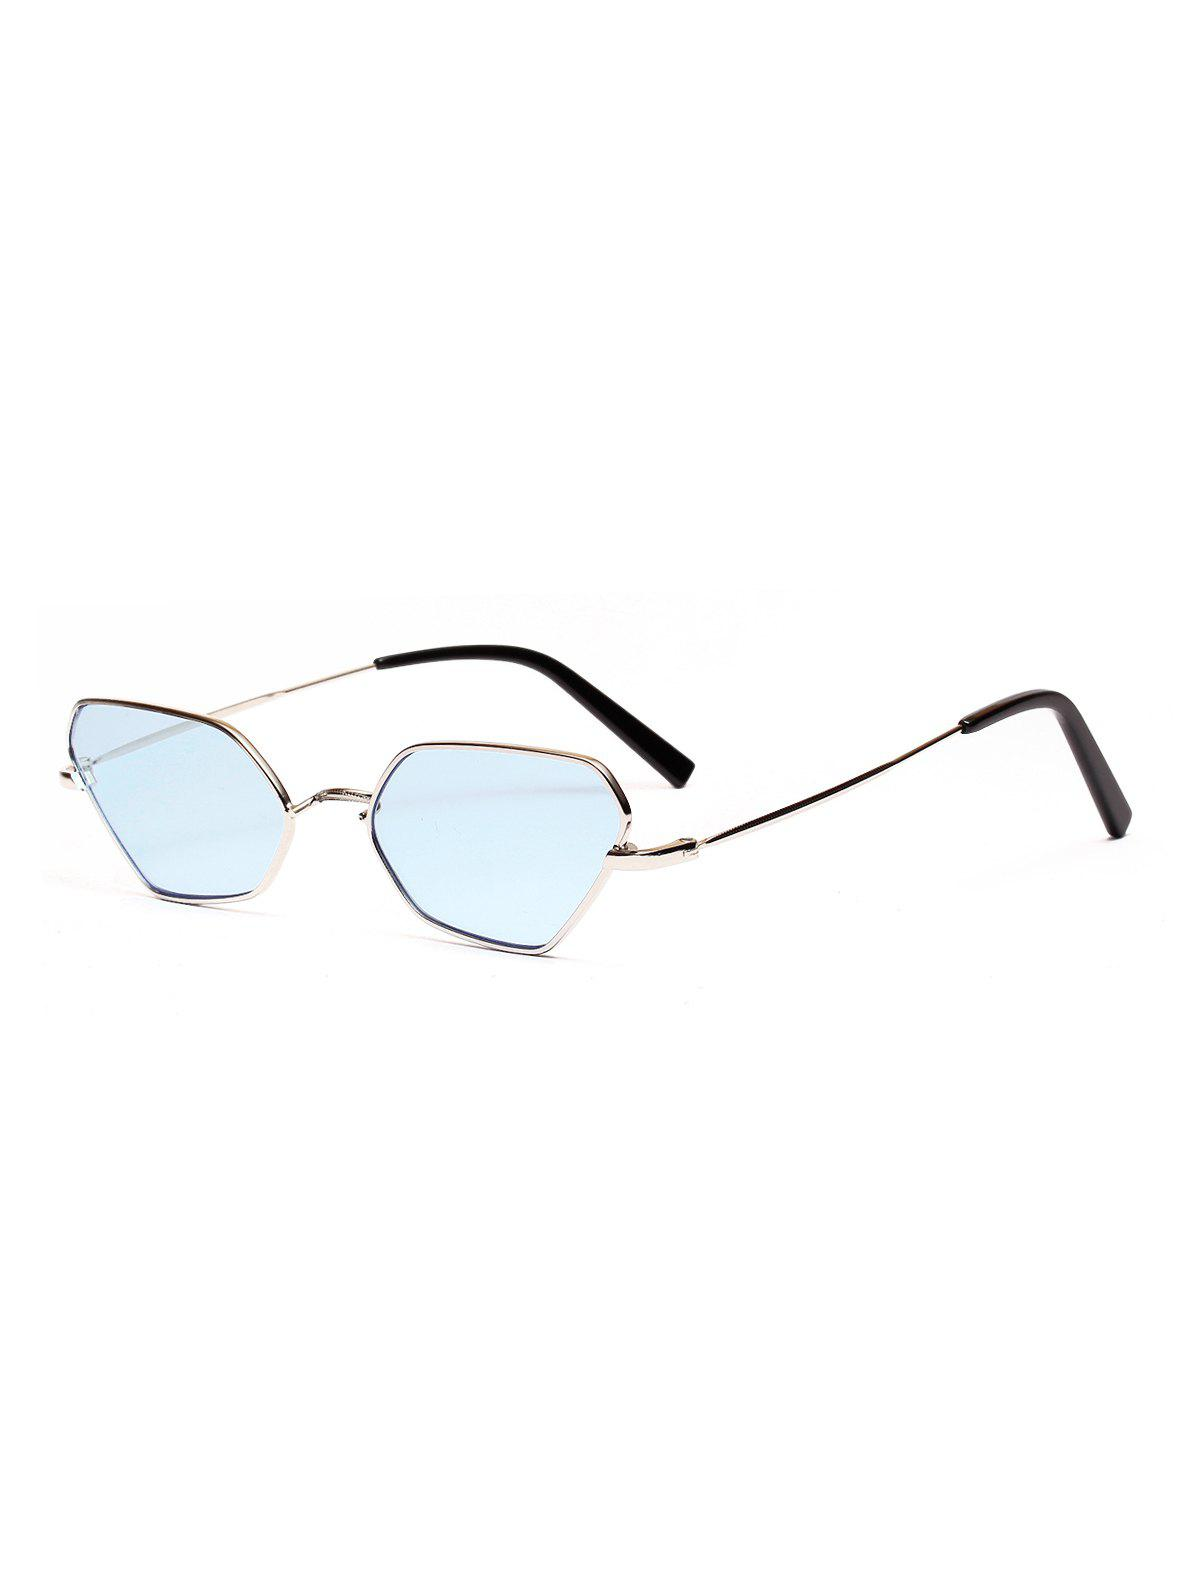 Best Metal Irregular Small Sunglasses